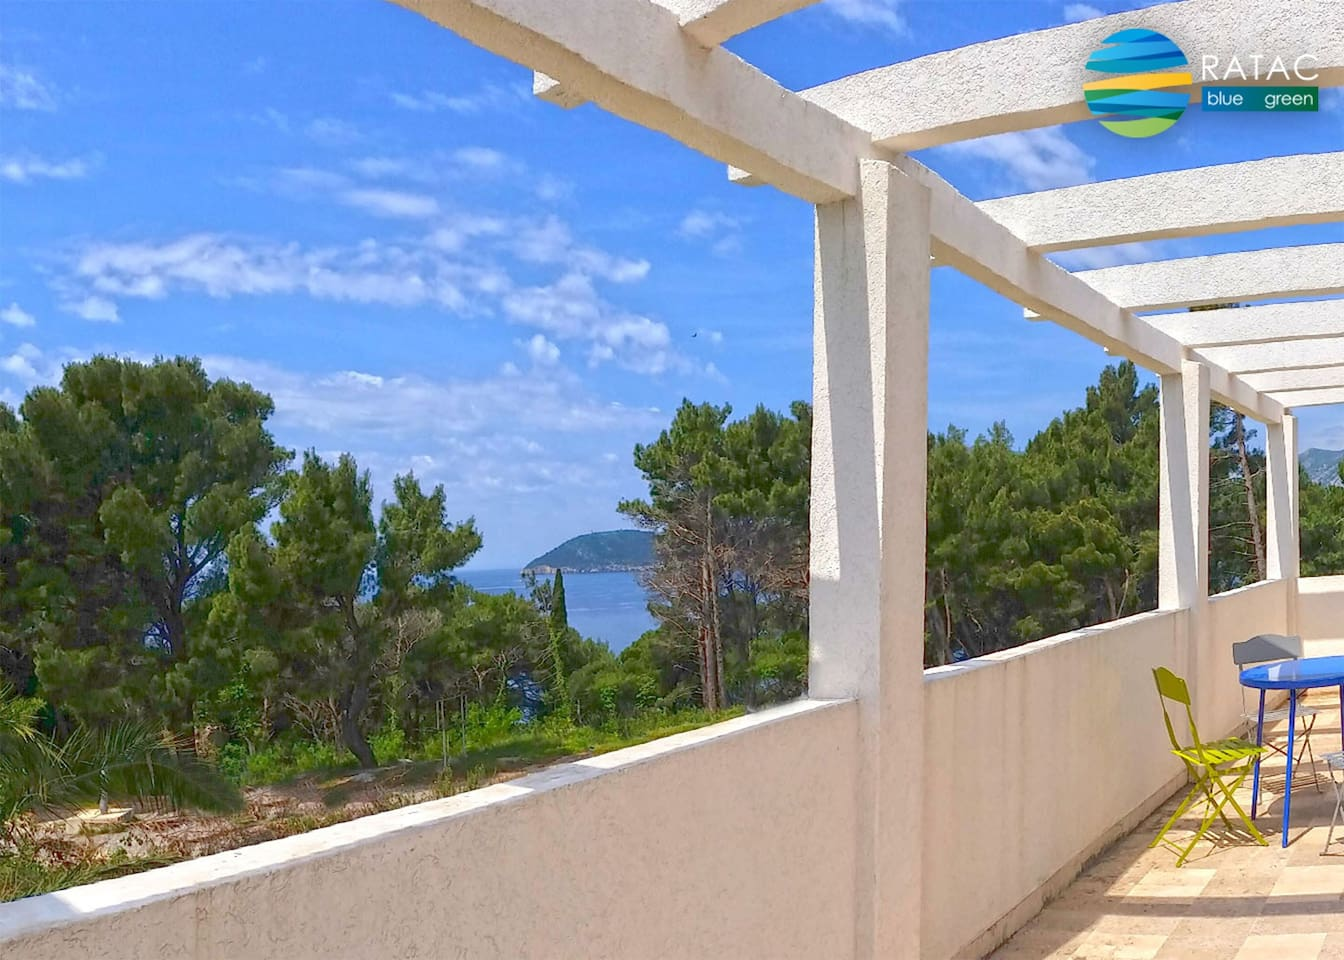 ANTIQUE SUITE - terrace just 50 meters from the sea line and three closest beaches.